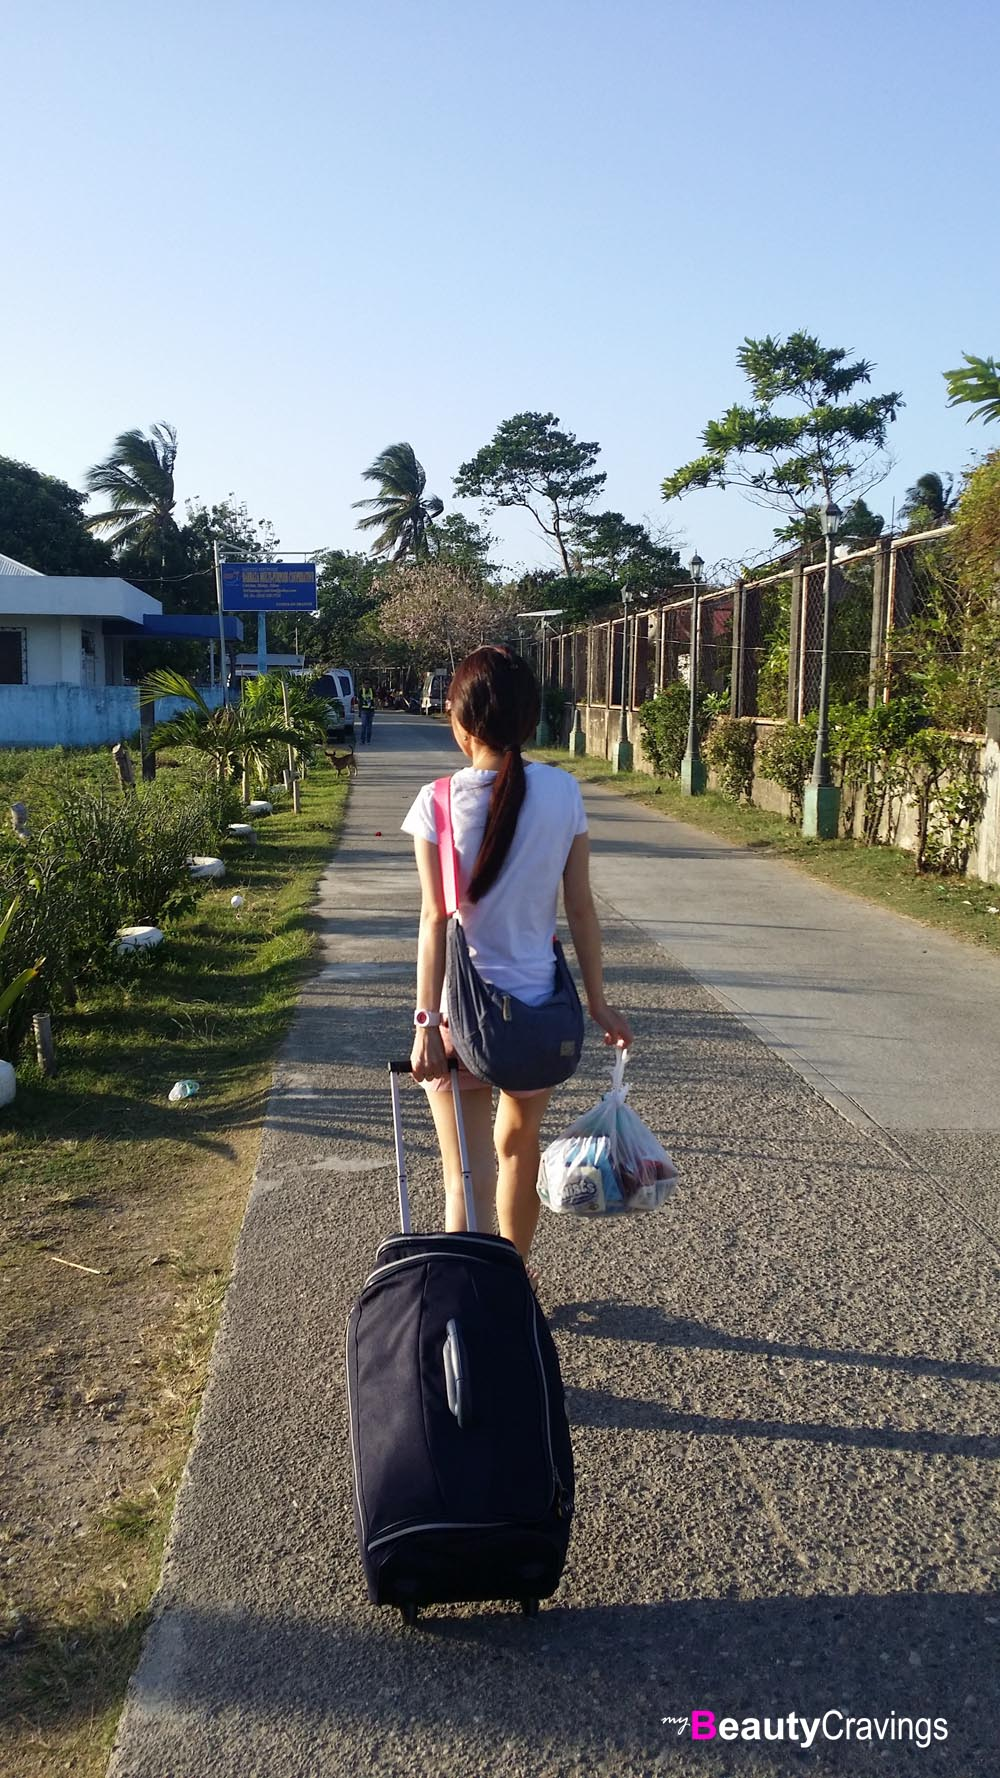 Caticlan Airport to Jetty